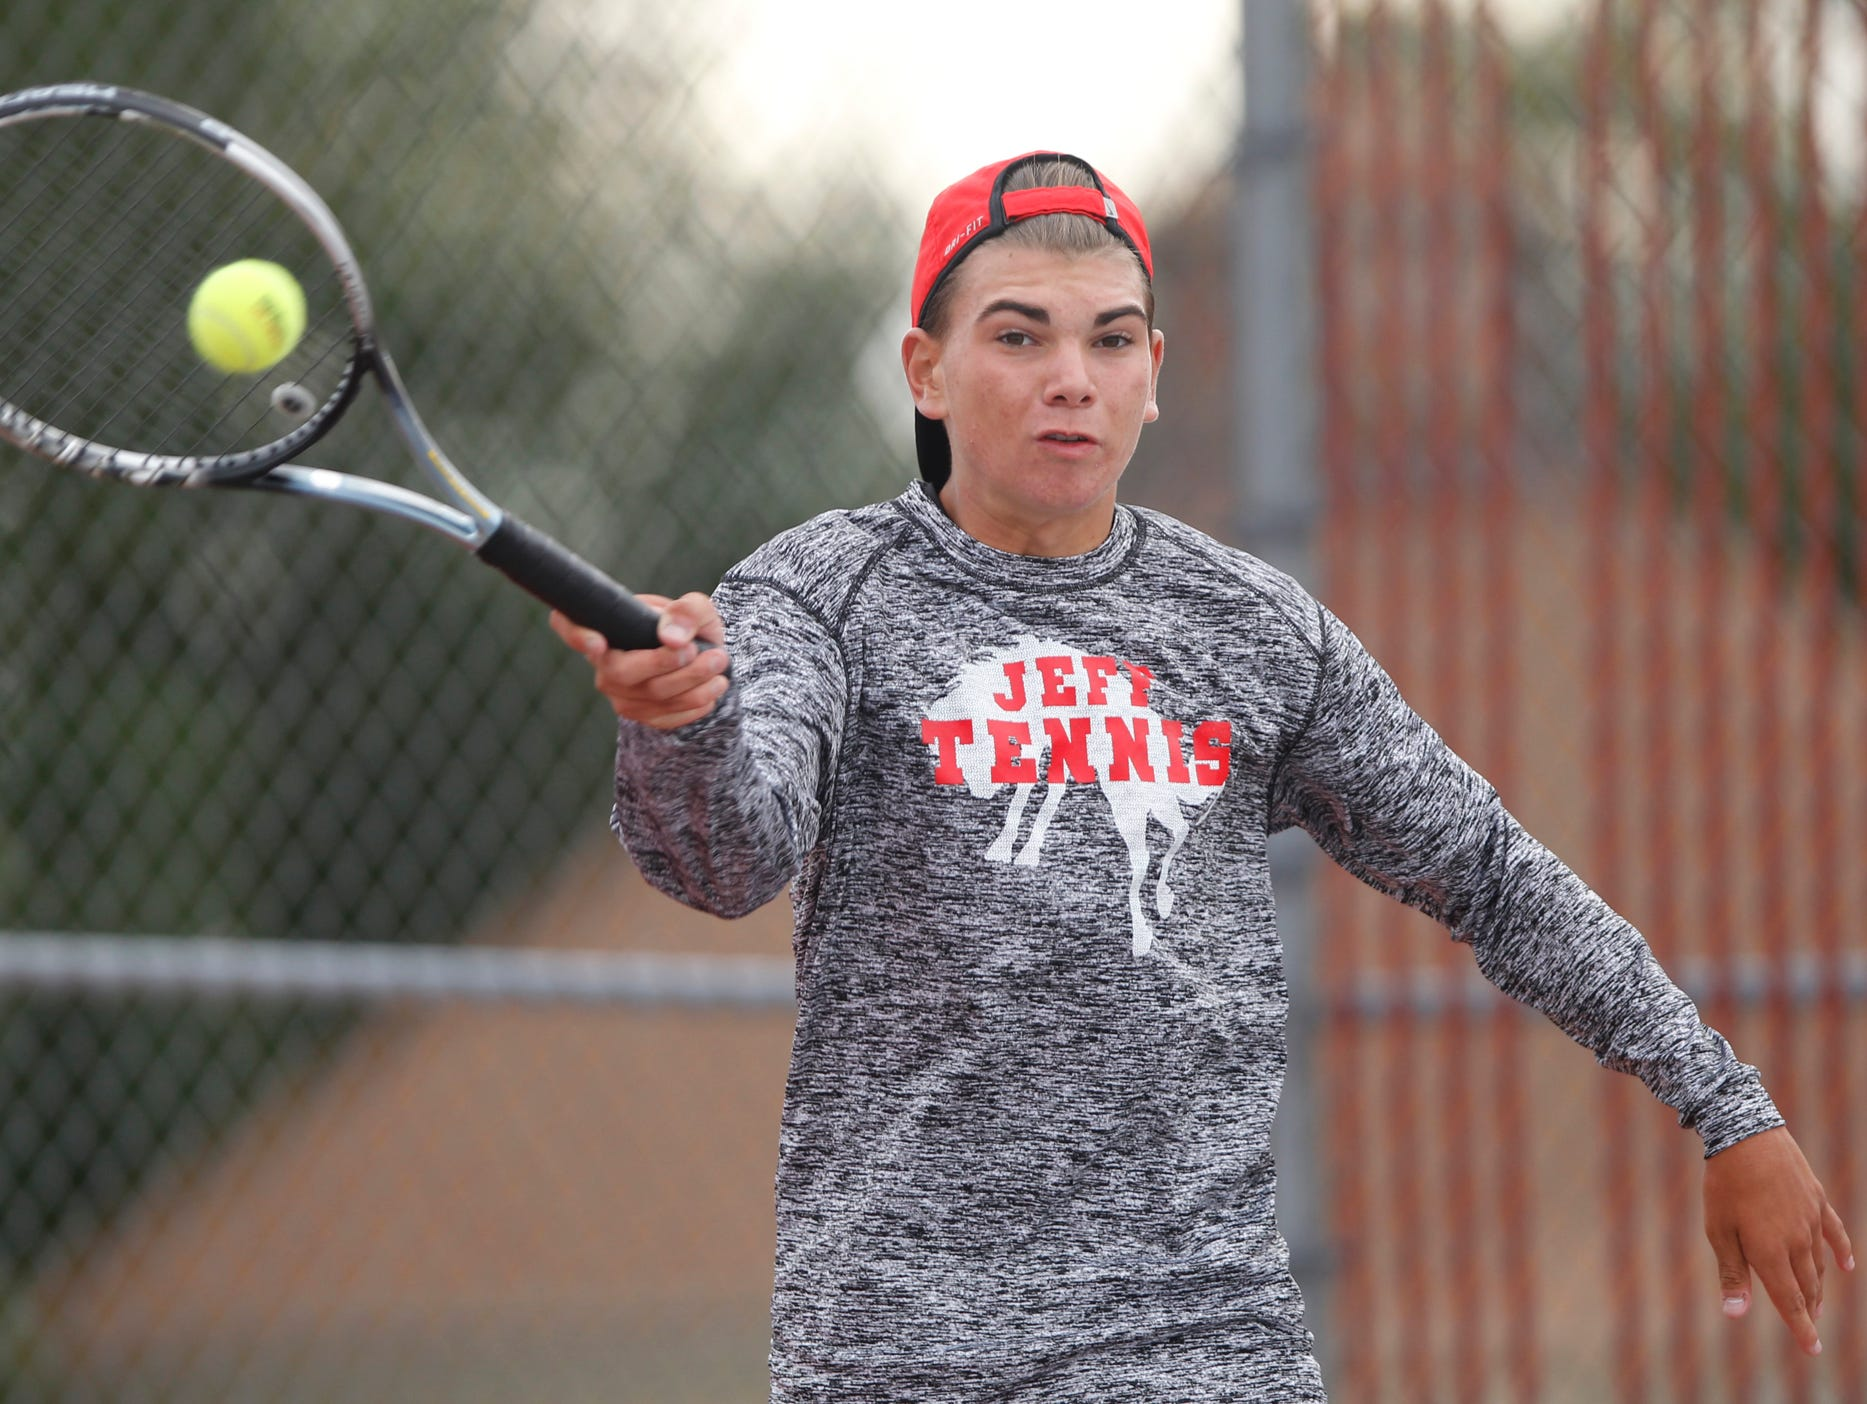 Lafayette Jeff's Ryan Walker with a return against West Lafayette's Arjun Ramani in No. 2 singles during the boys tennis sectional championship Friday, October 2, 2015, at Cumberland Courts in West Lafayette.